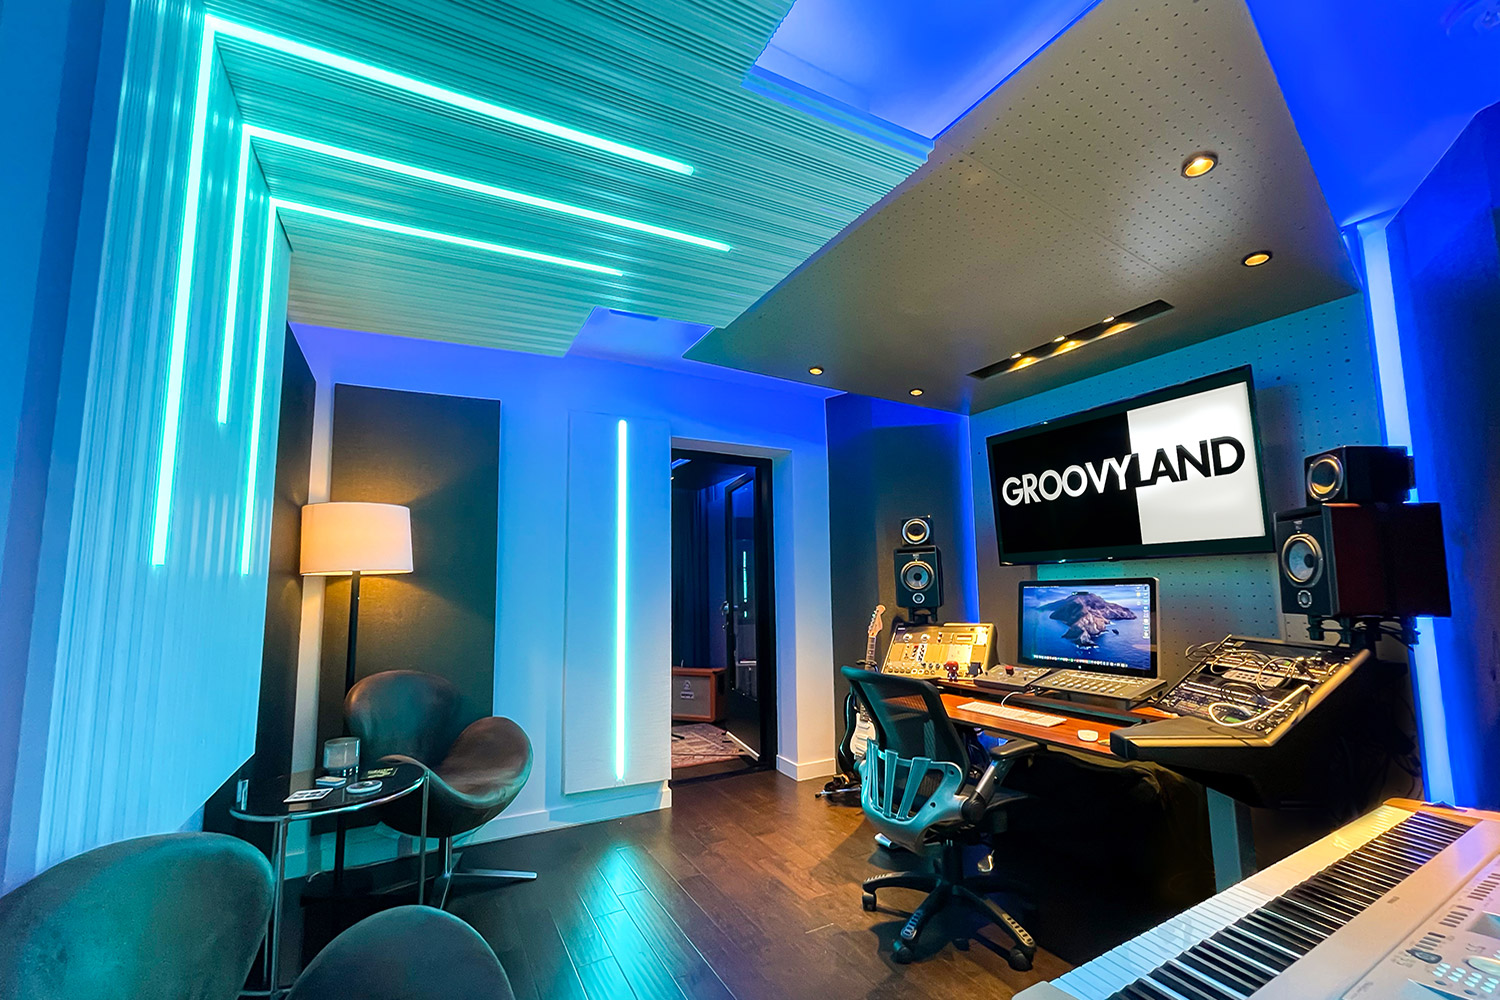 Groovyland Studios in North Miami Beach, owned by producer David Molho. Residential e-recording studio. Control Room designed by WSDG.